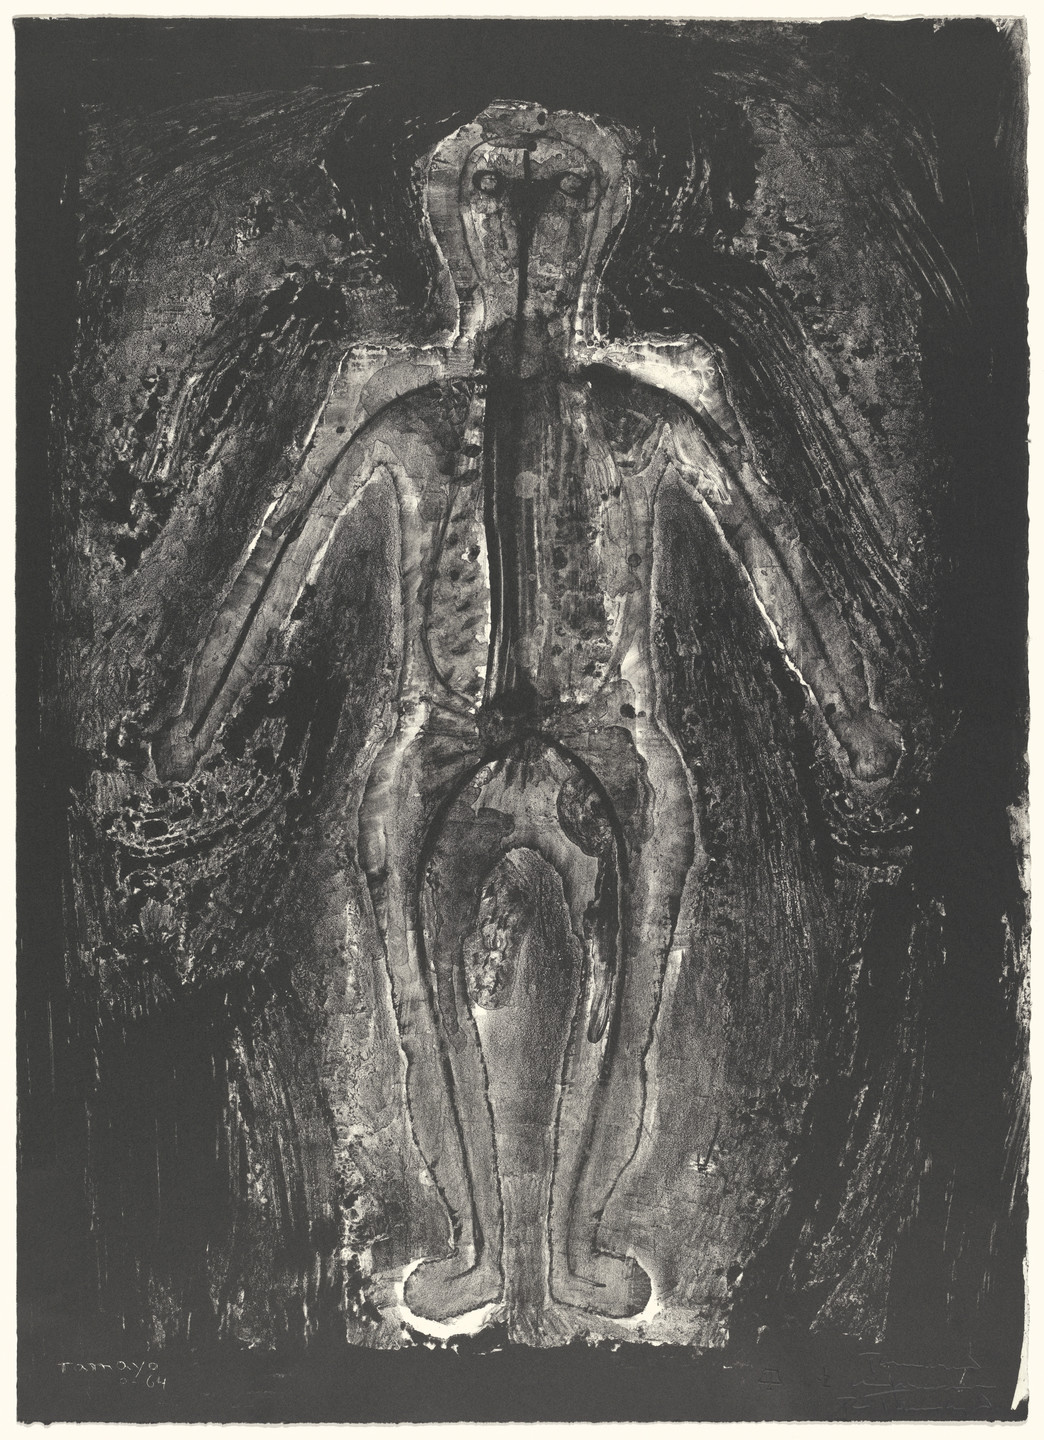 Rufino Tamayo. Transparent Man. 1964